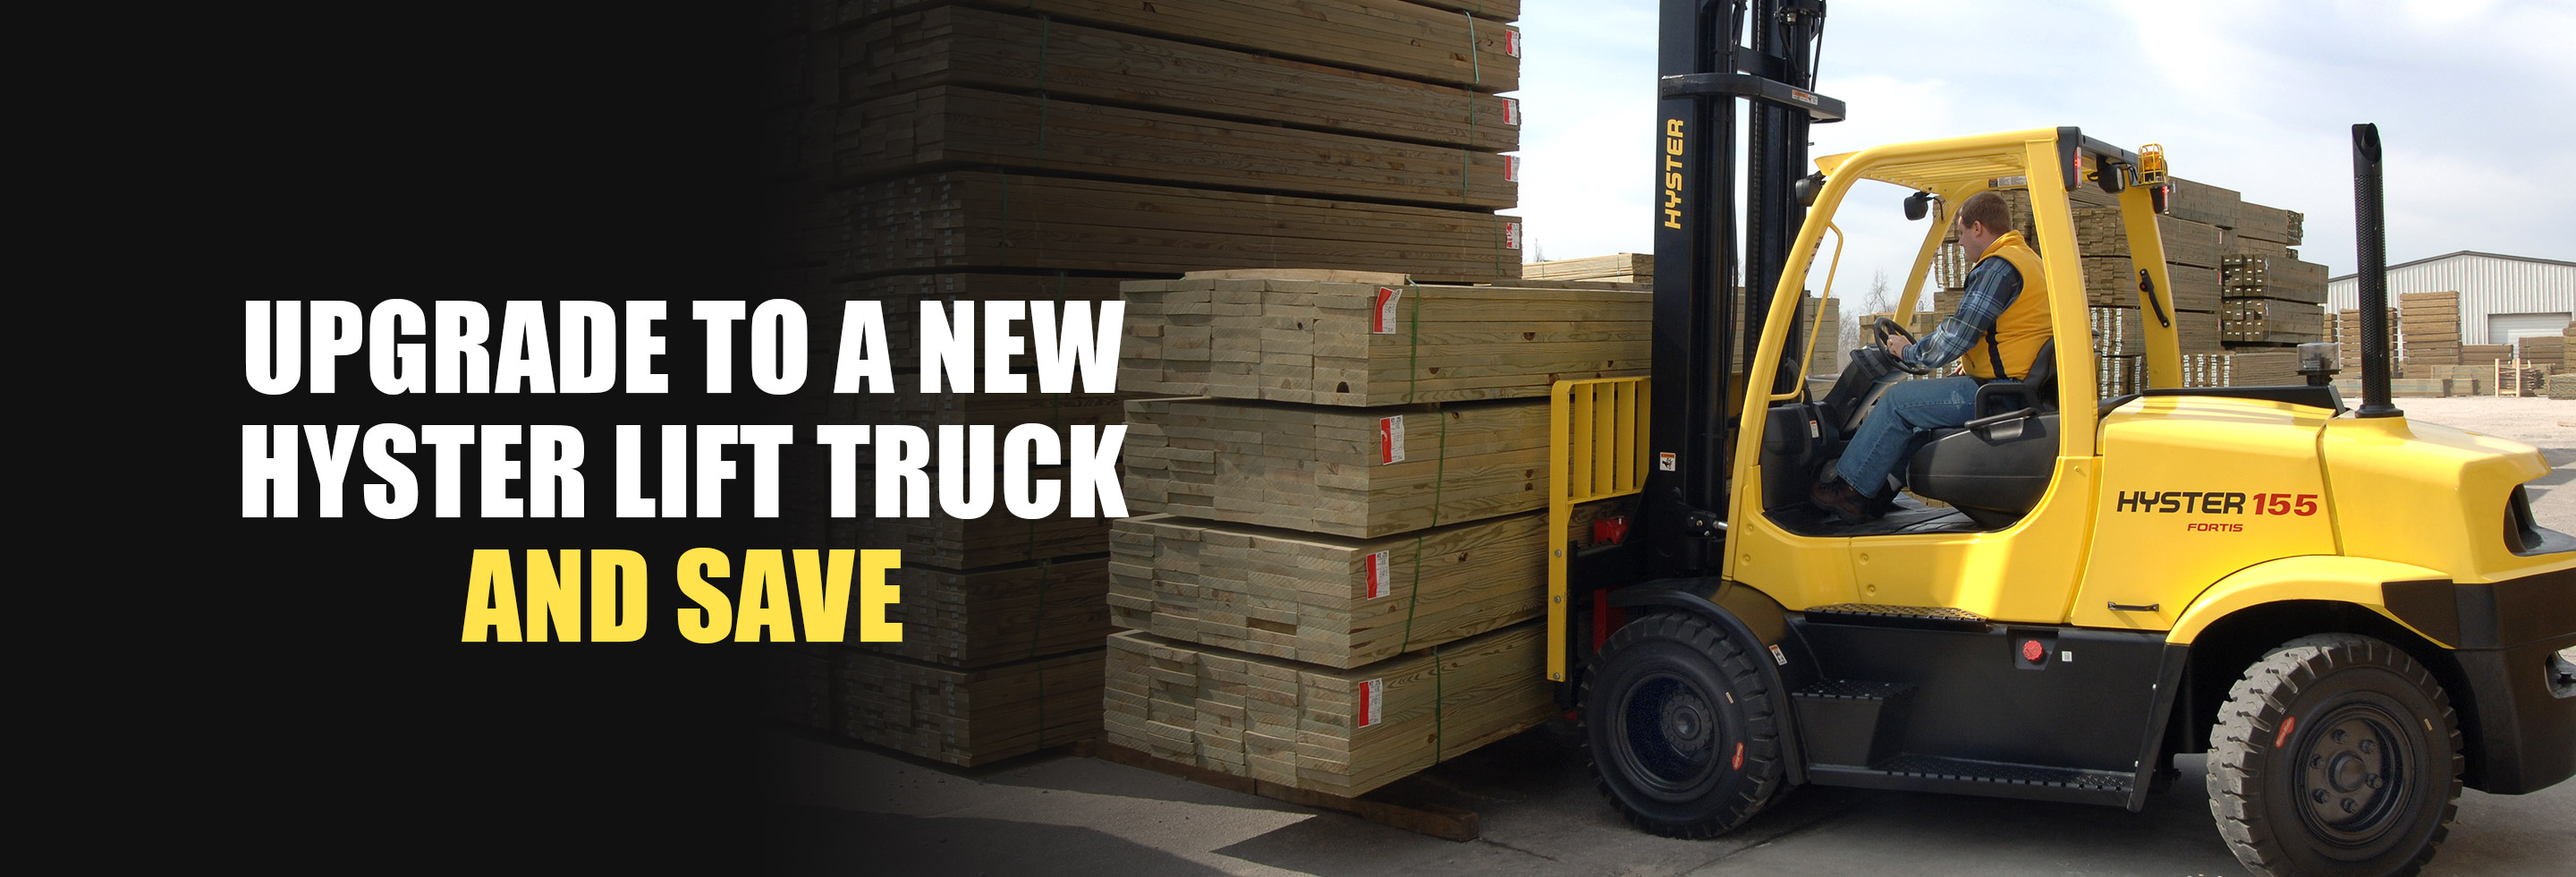 Upgrade to a new Hyster lift truck and save